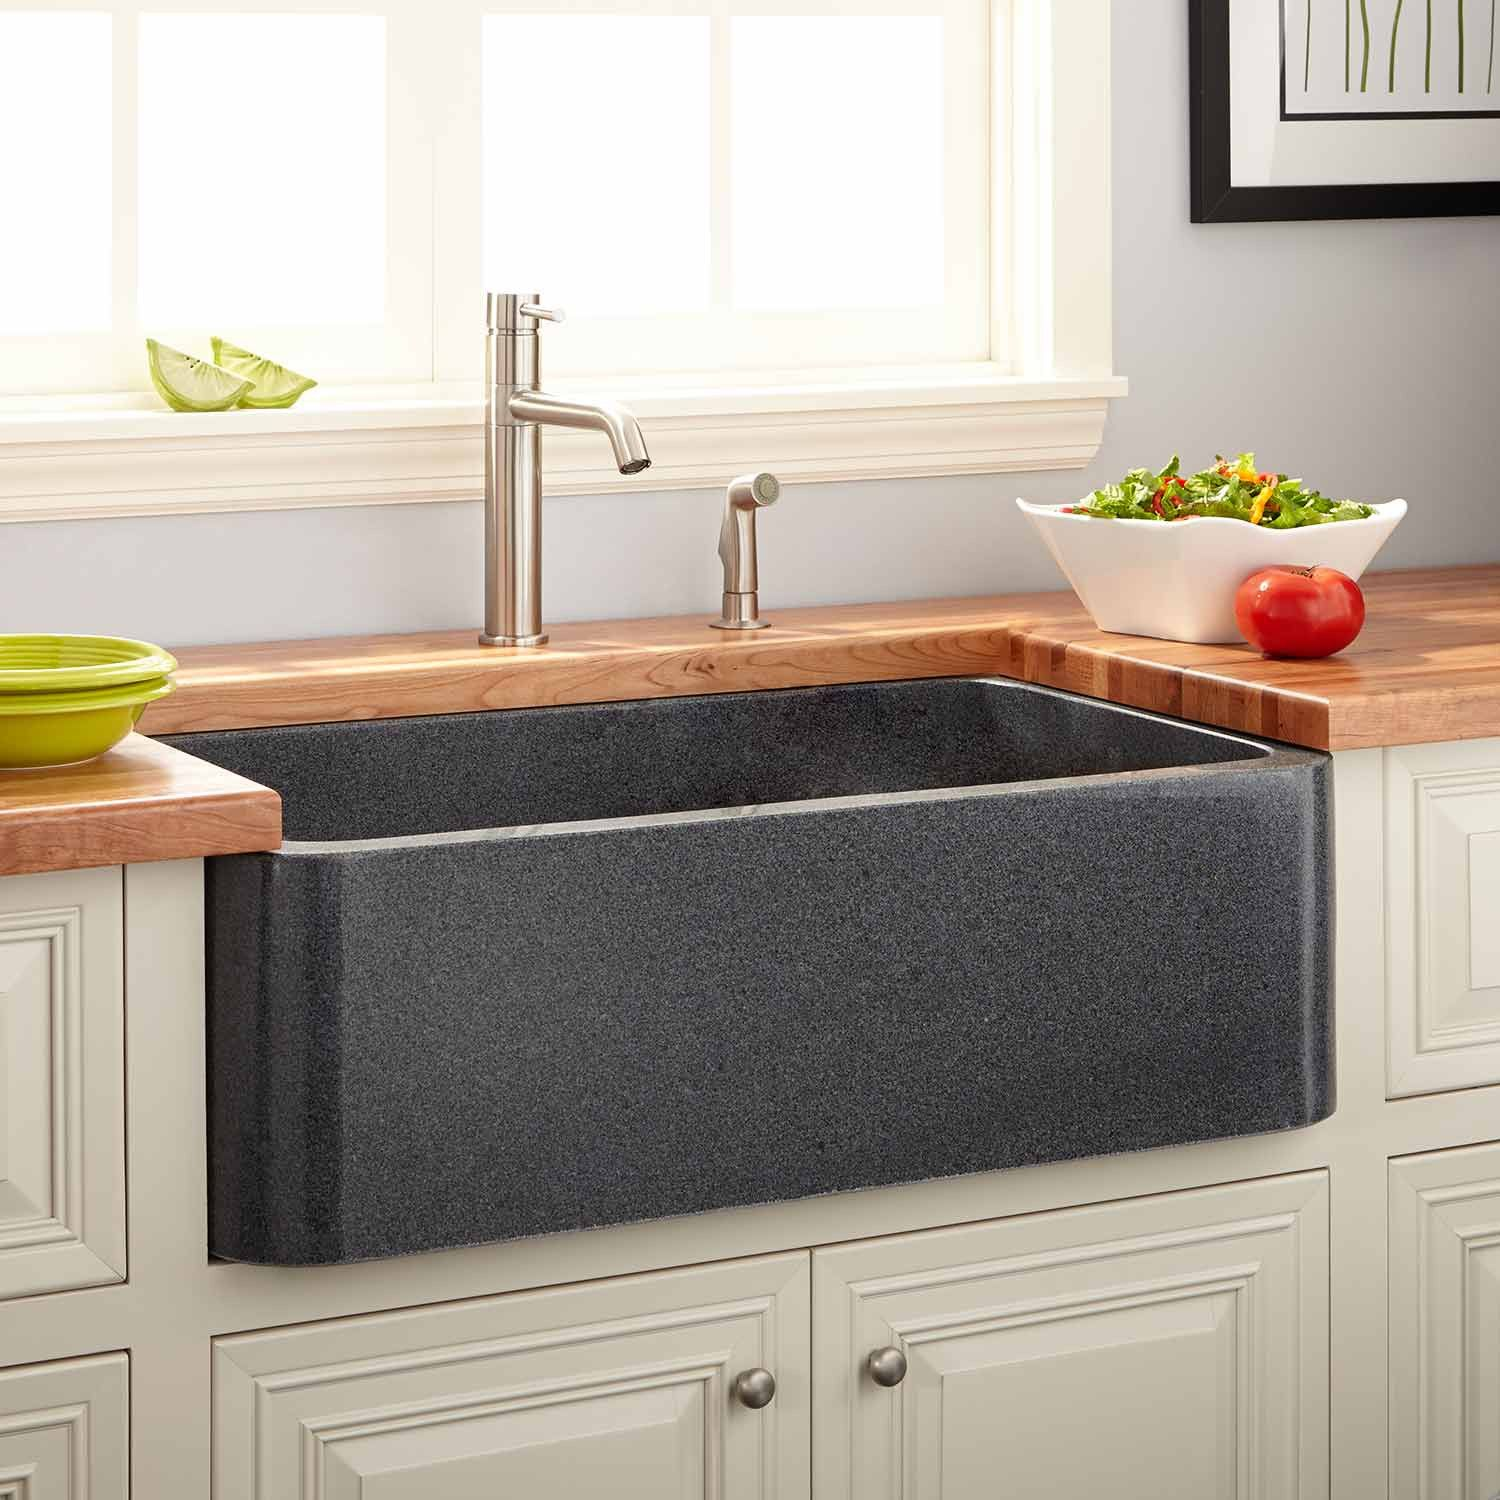 36 polished granite single bowl farmhouse sink blue gray granite kitchen sinks granite the 36 Farmhouse Sink brings classic beauty to your kitchen Featuring a sizable bowl this product is perfect for rinsing pots and pans